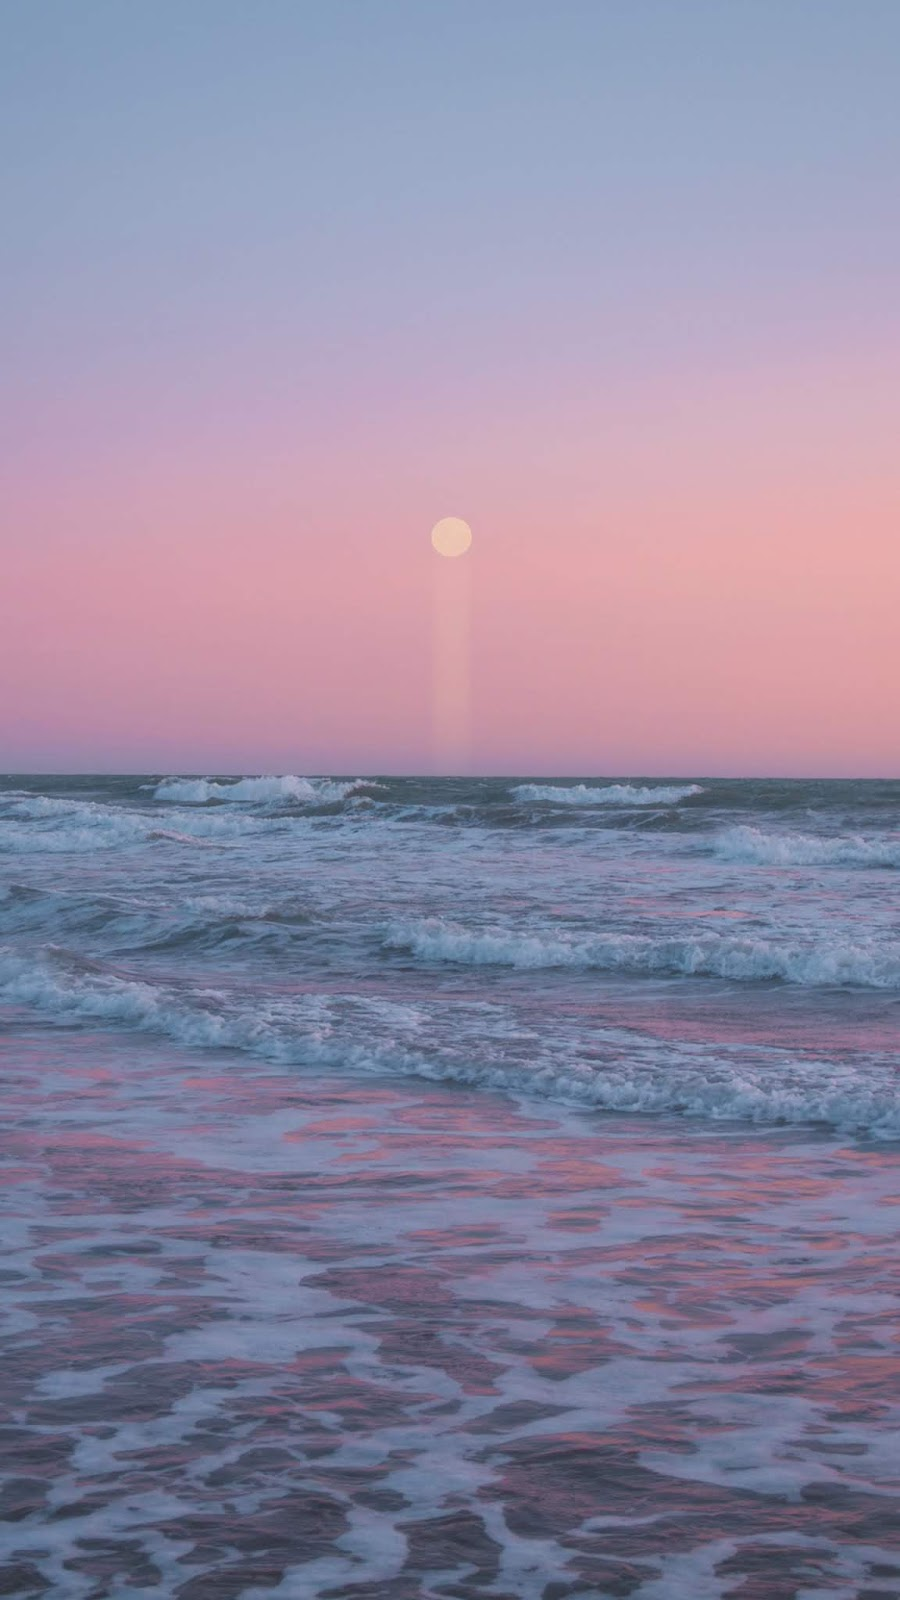 Moon in the pink sky on the beach